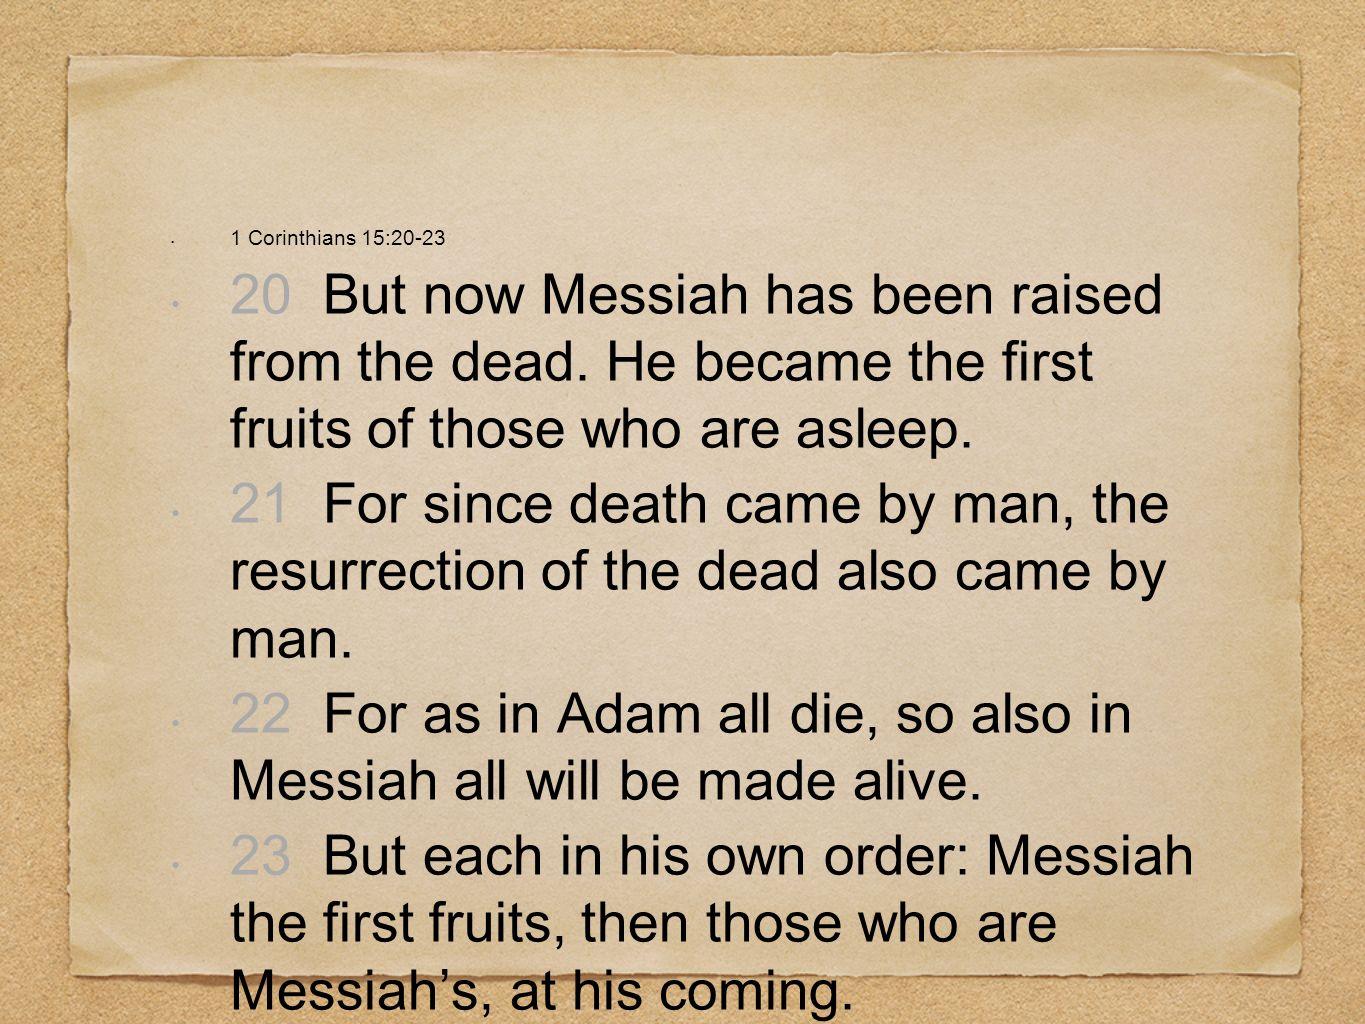 22 For as in Adam all die, so also in Messiah all will be made alive.